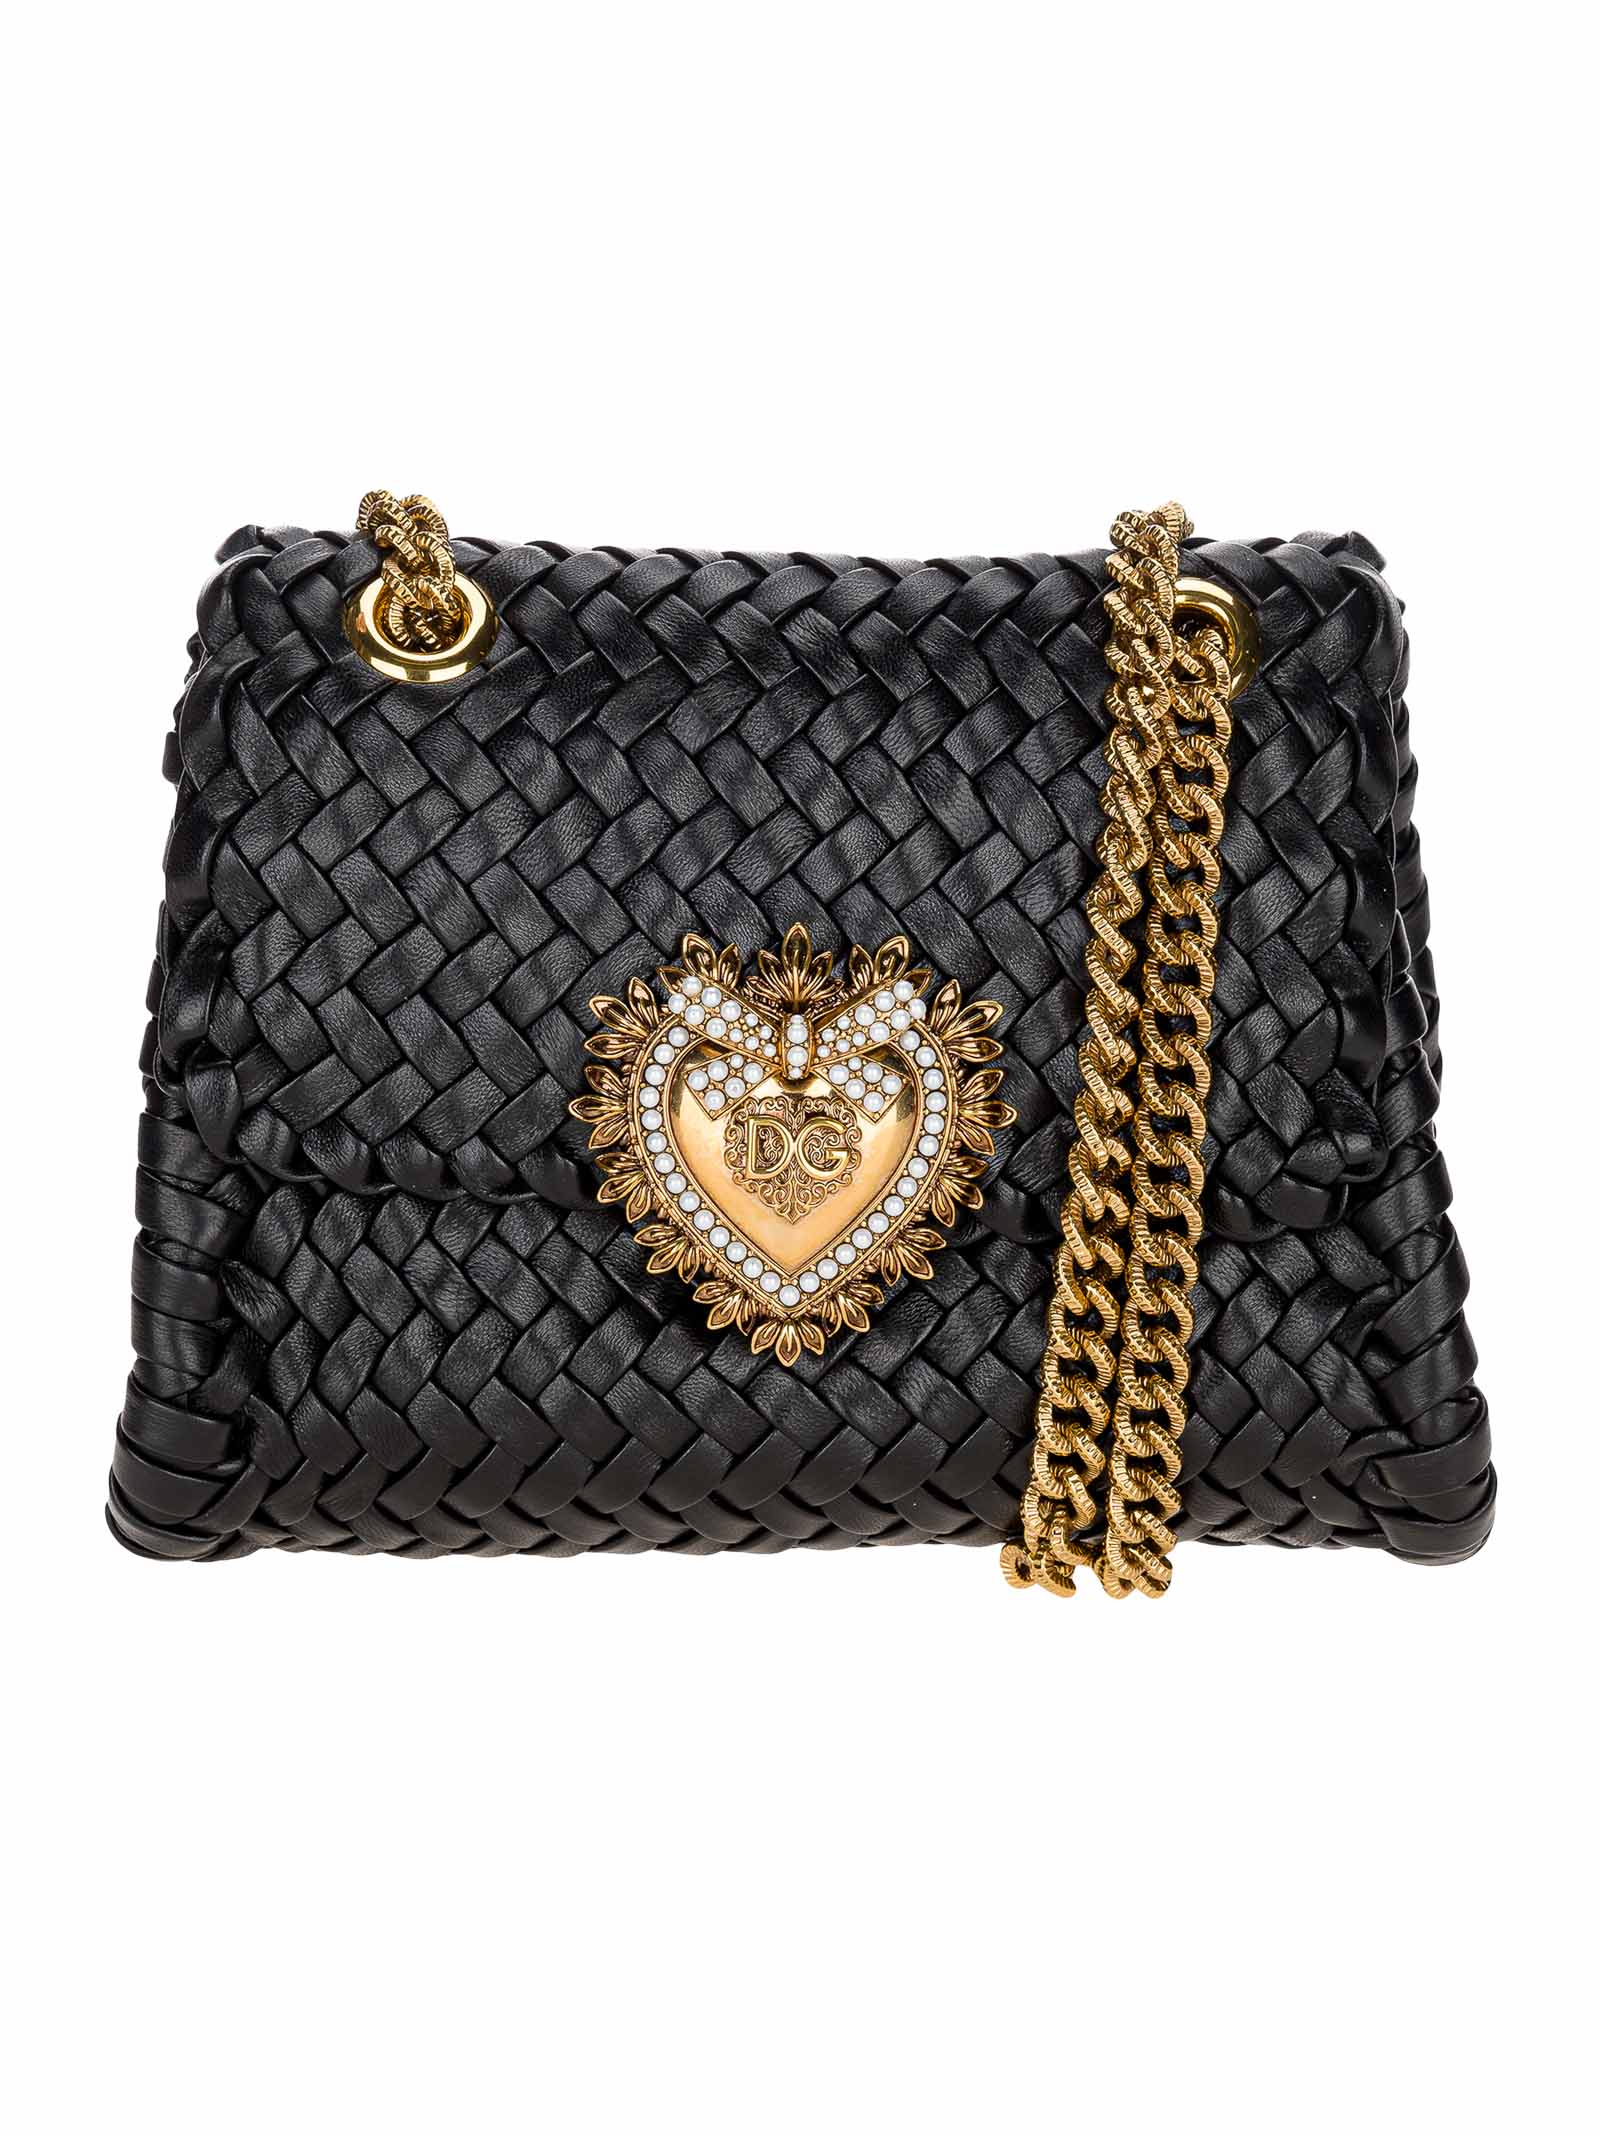 Dolce & Gabbana Leathers DOLCE & GABBANA SMALL DEVOTION SHOULDER BAG IN WOVEN NAPPA LEATHER